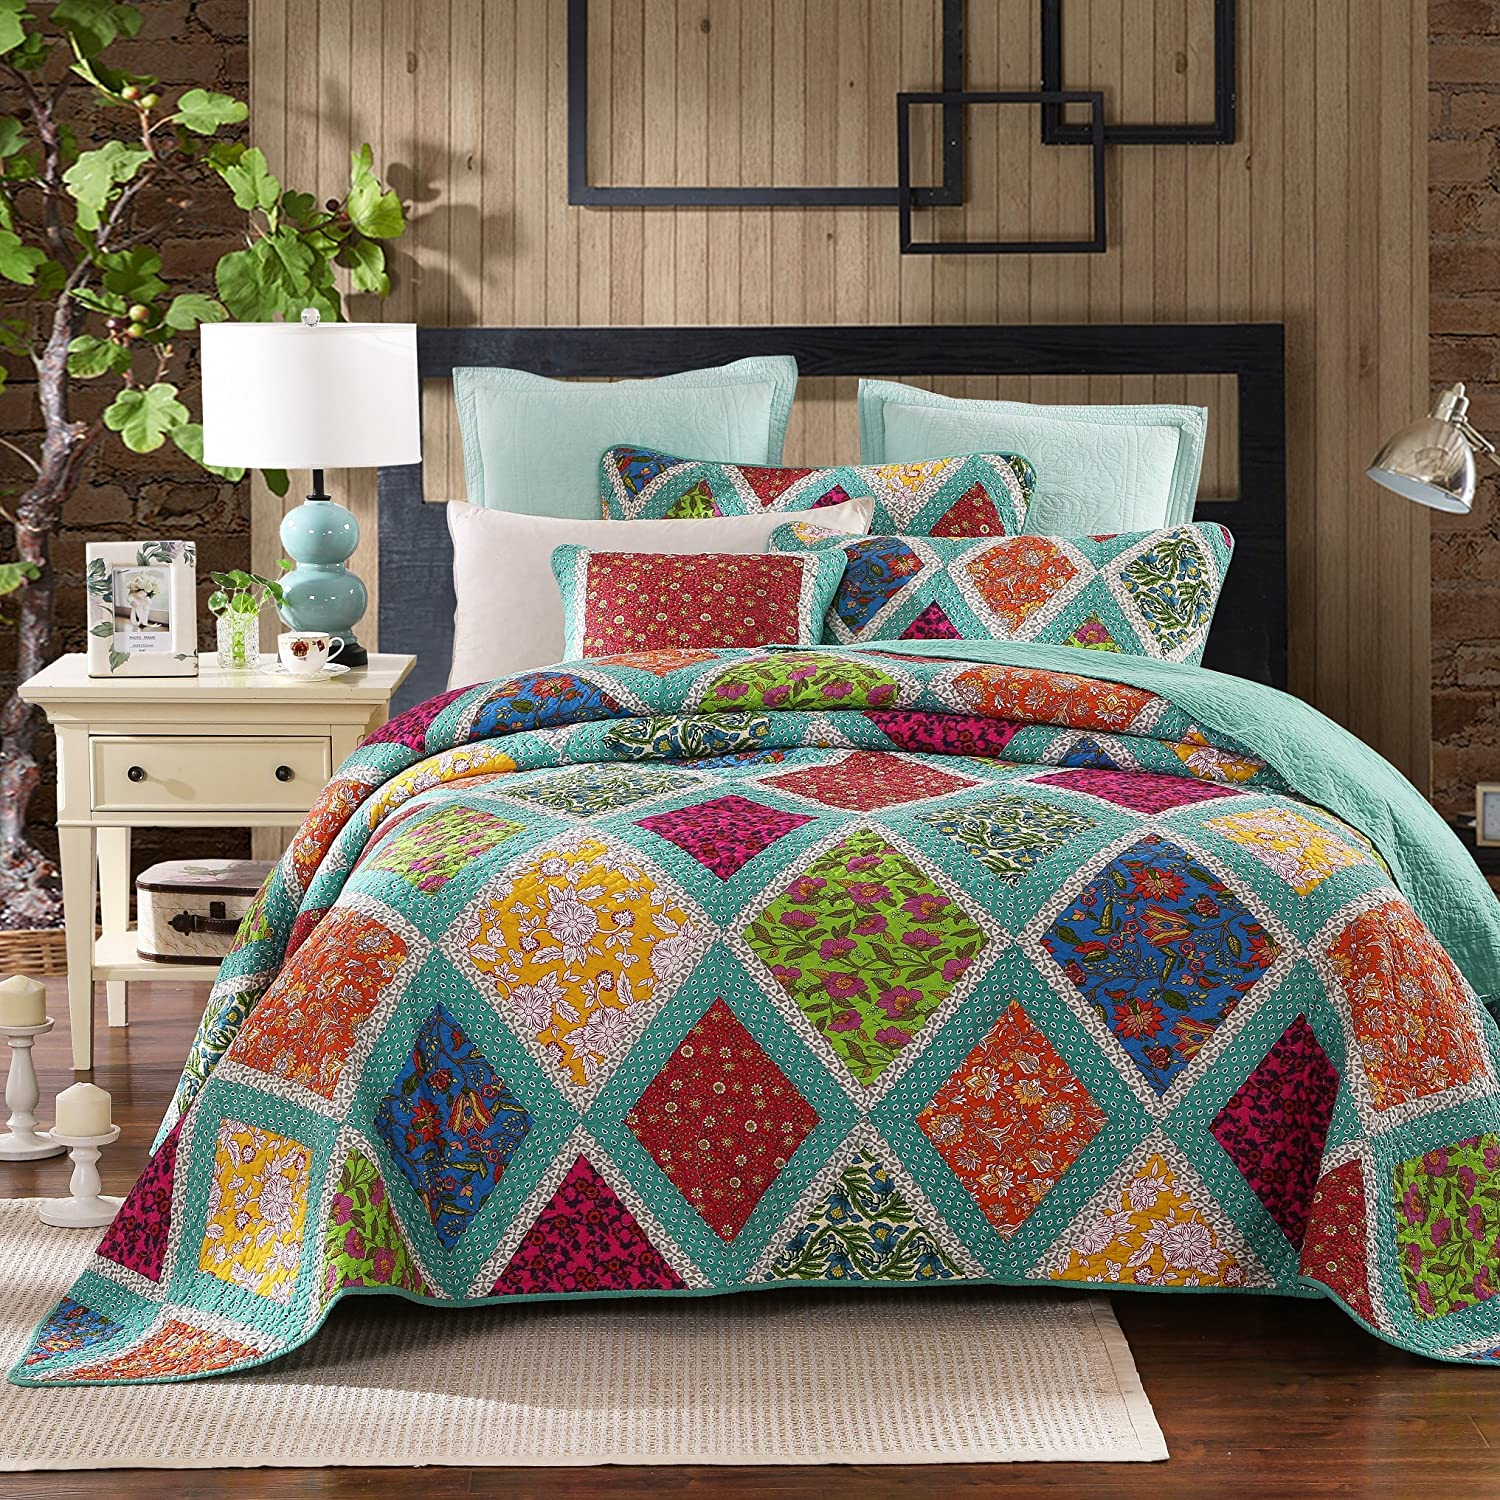 DaDa Bedding Collection Reversible Real Patchwork Cotton Fairy Forest Glade Floral Quilt Bedspread Set